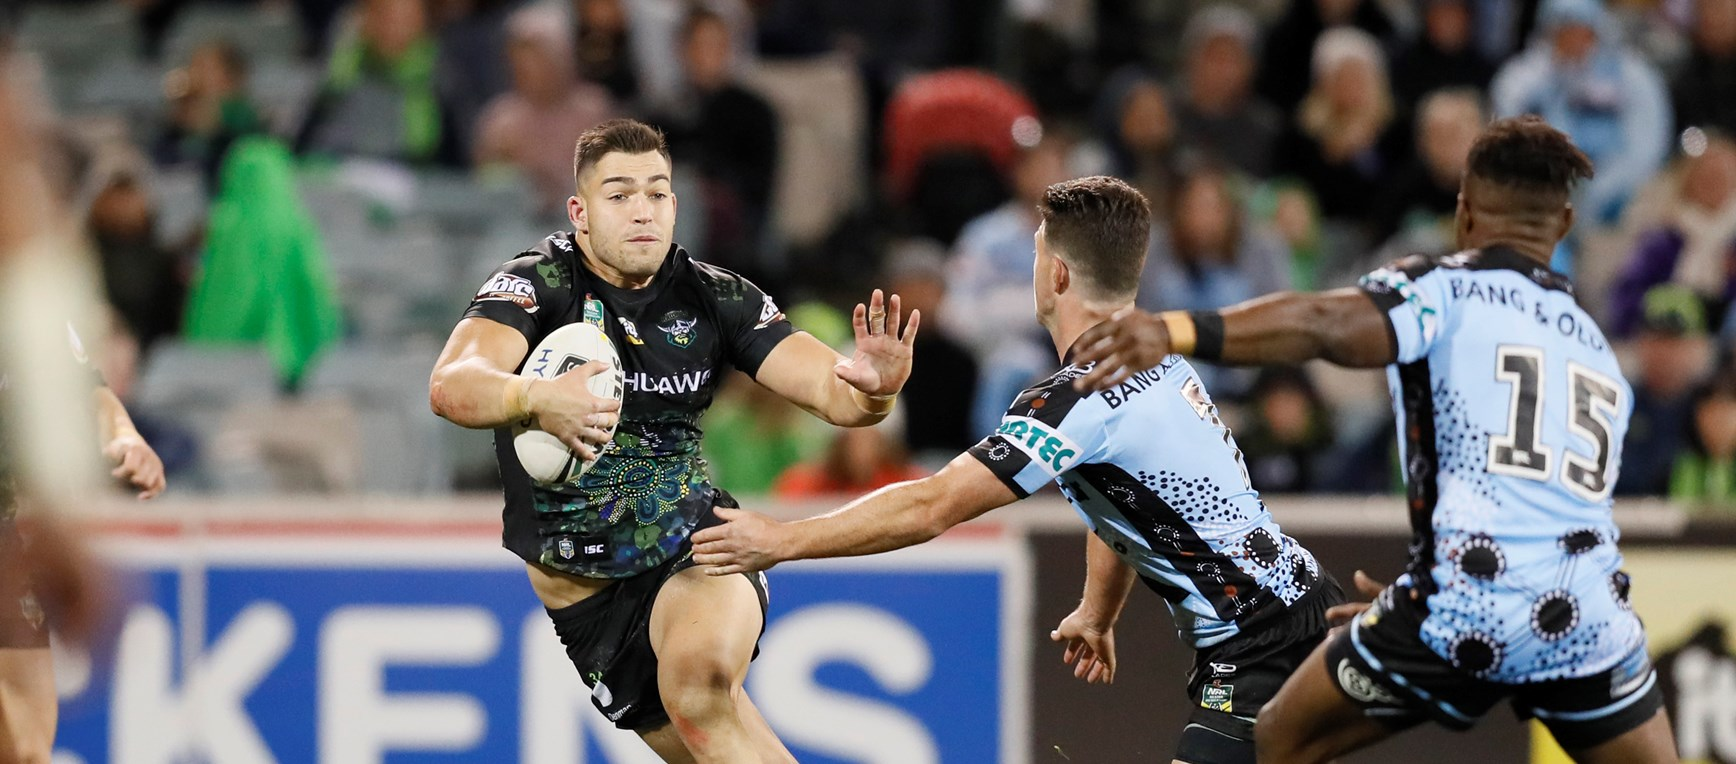 Gallery: Raiders v Sharks